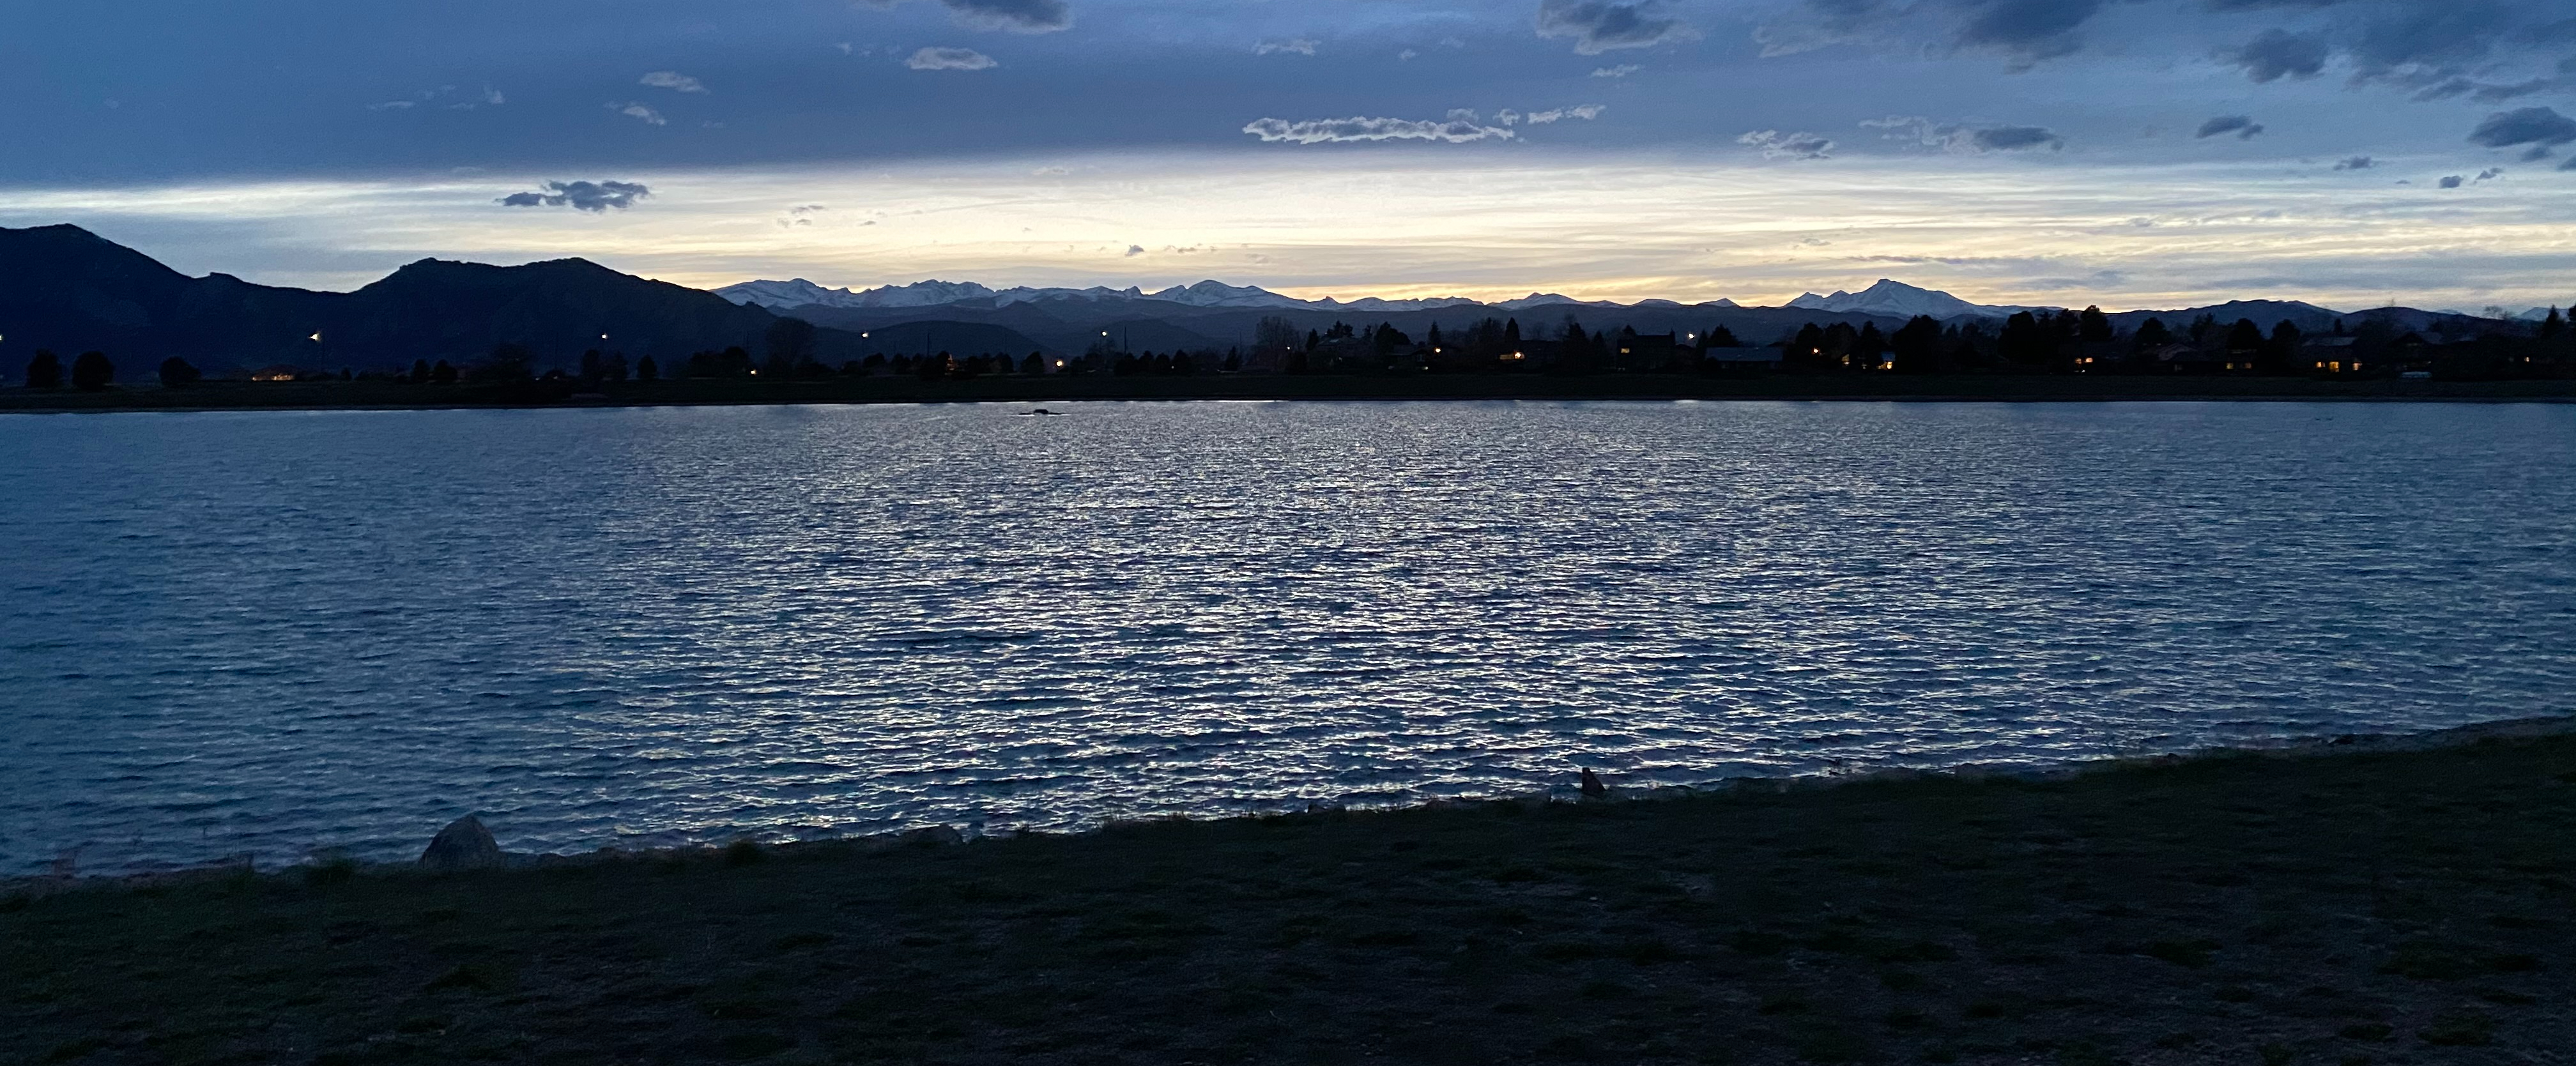 A blue lake with mountains in the background and a dark sky at night